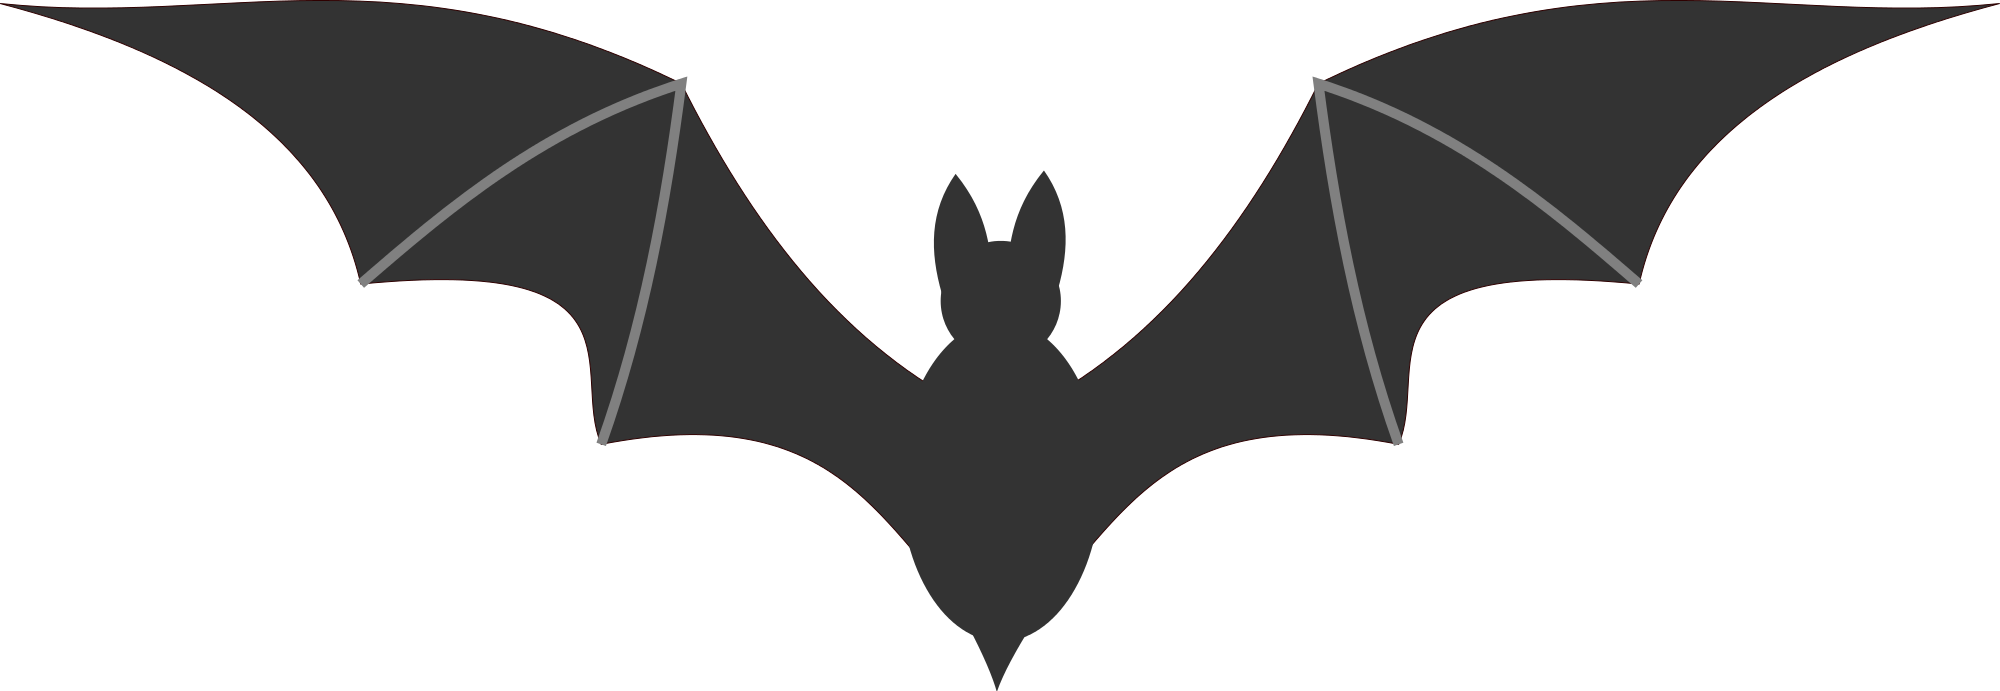 Free download high resolution image - free image free photo free stock image public domain picture -bat icon